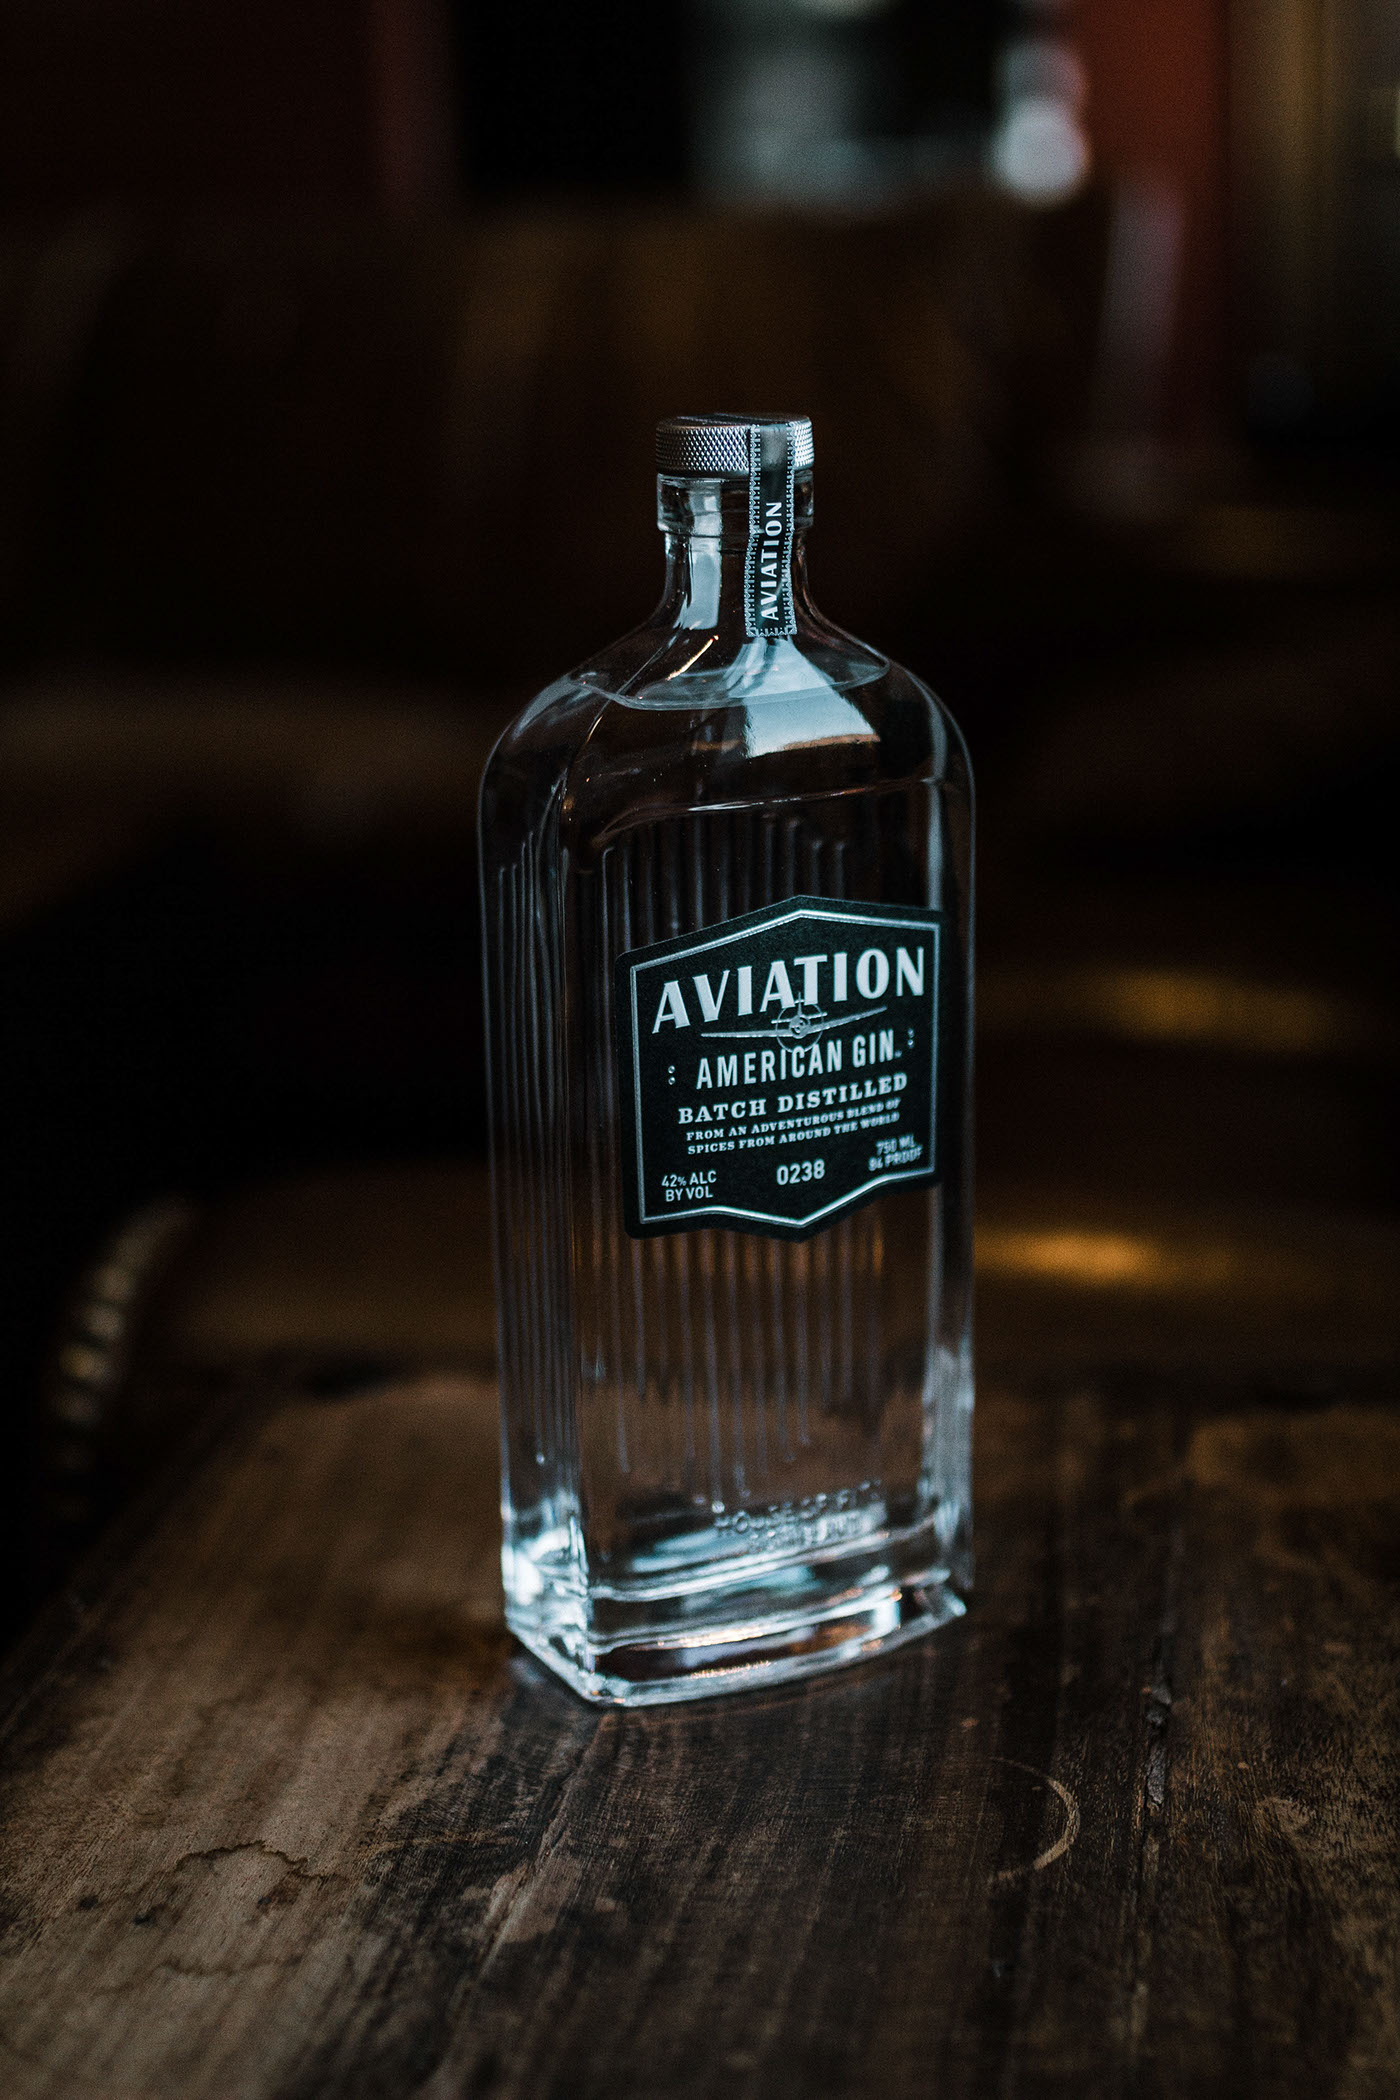 Aviation american gin portland - Ryan Reynolds喝一口就爱上的琴酒:Aviation Gin